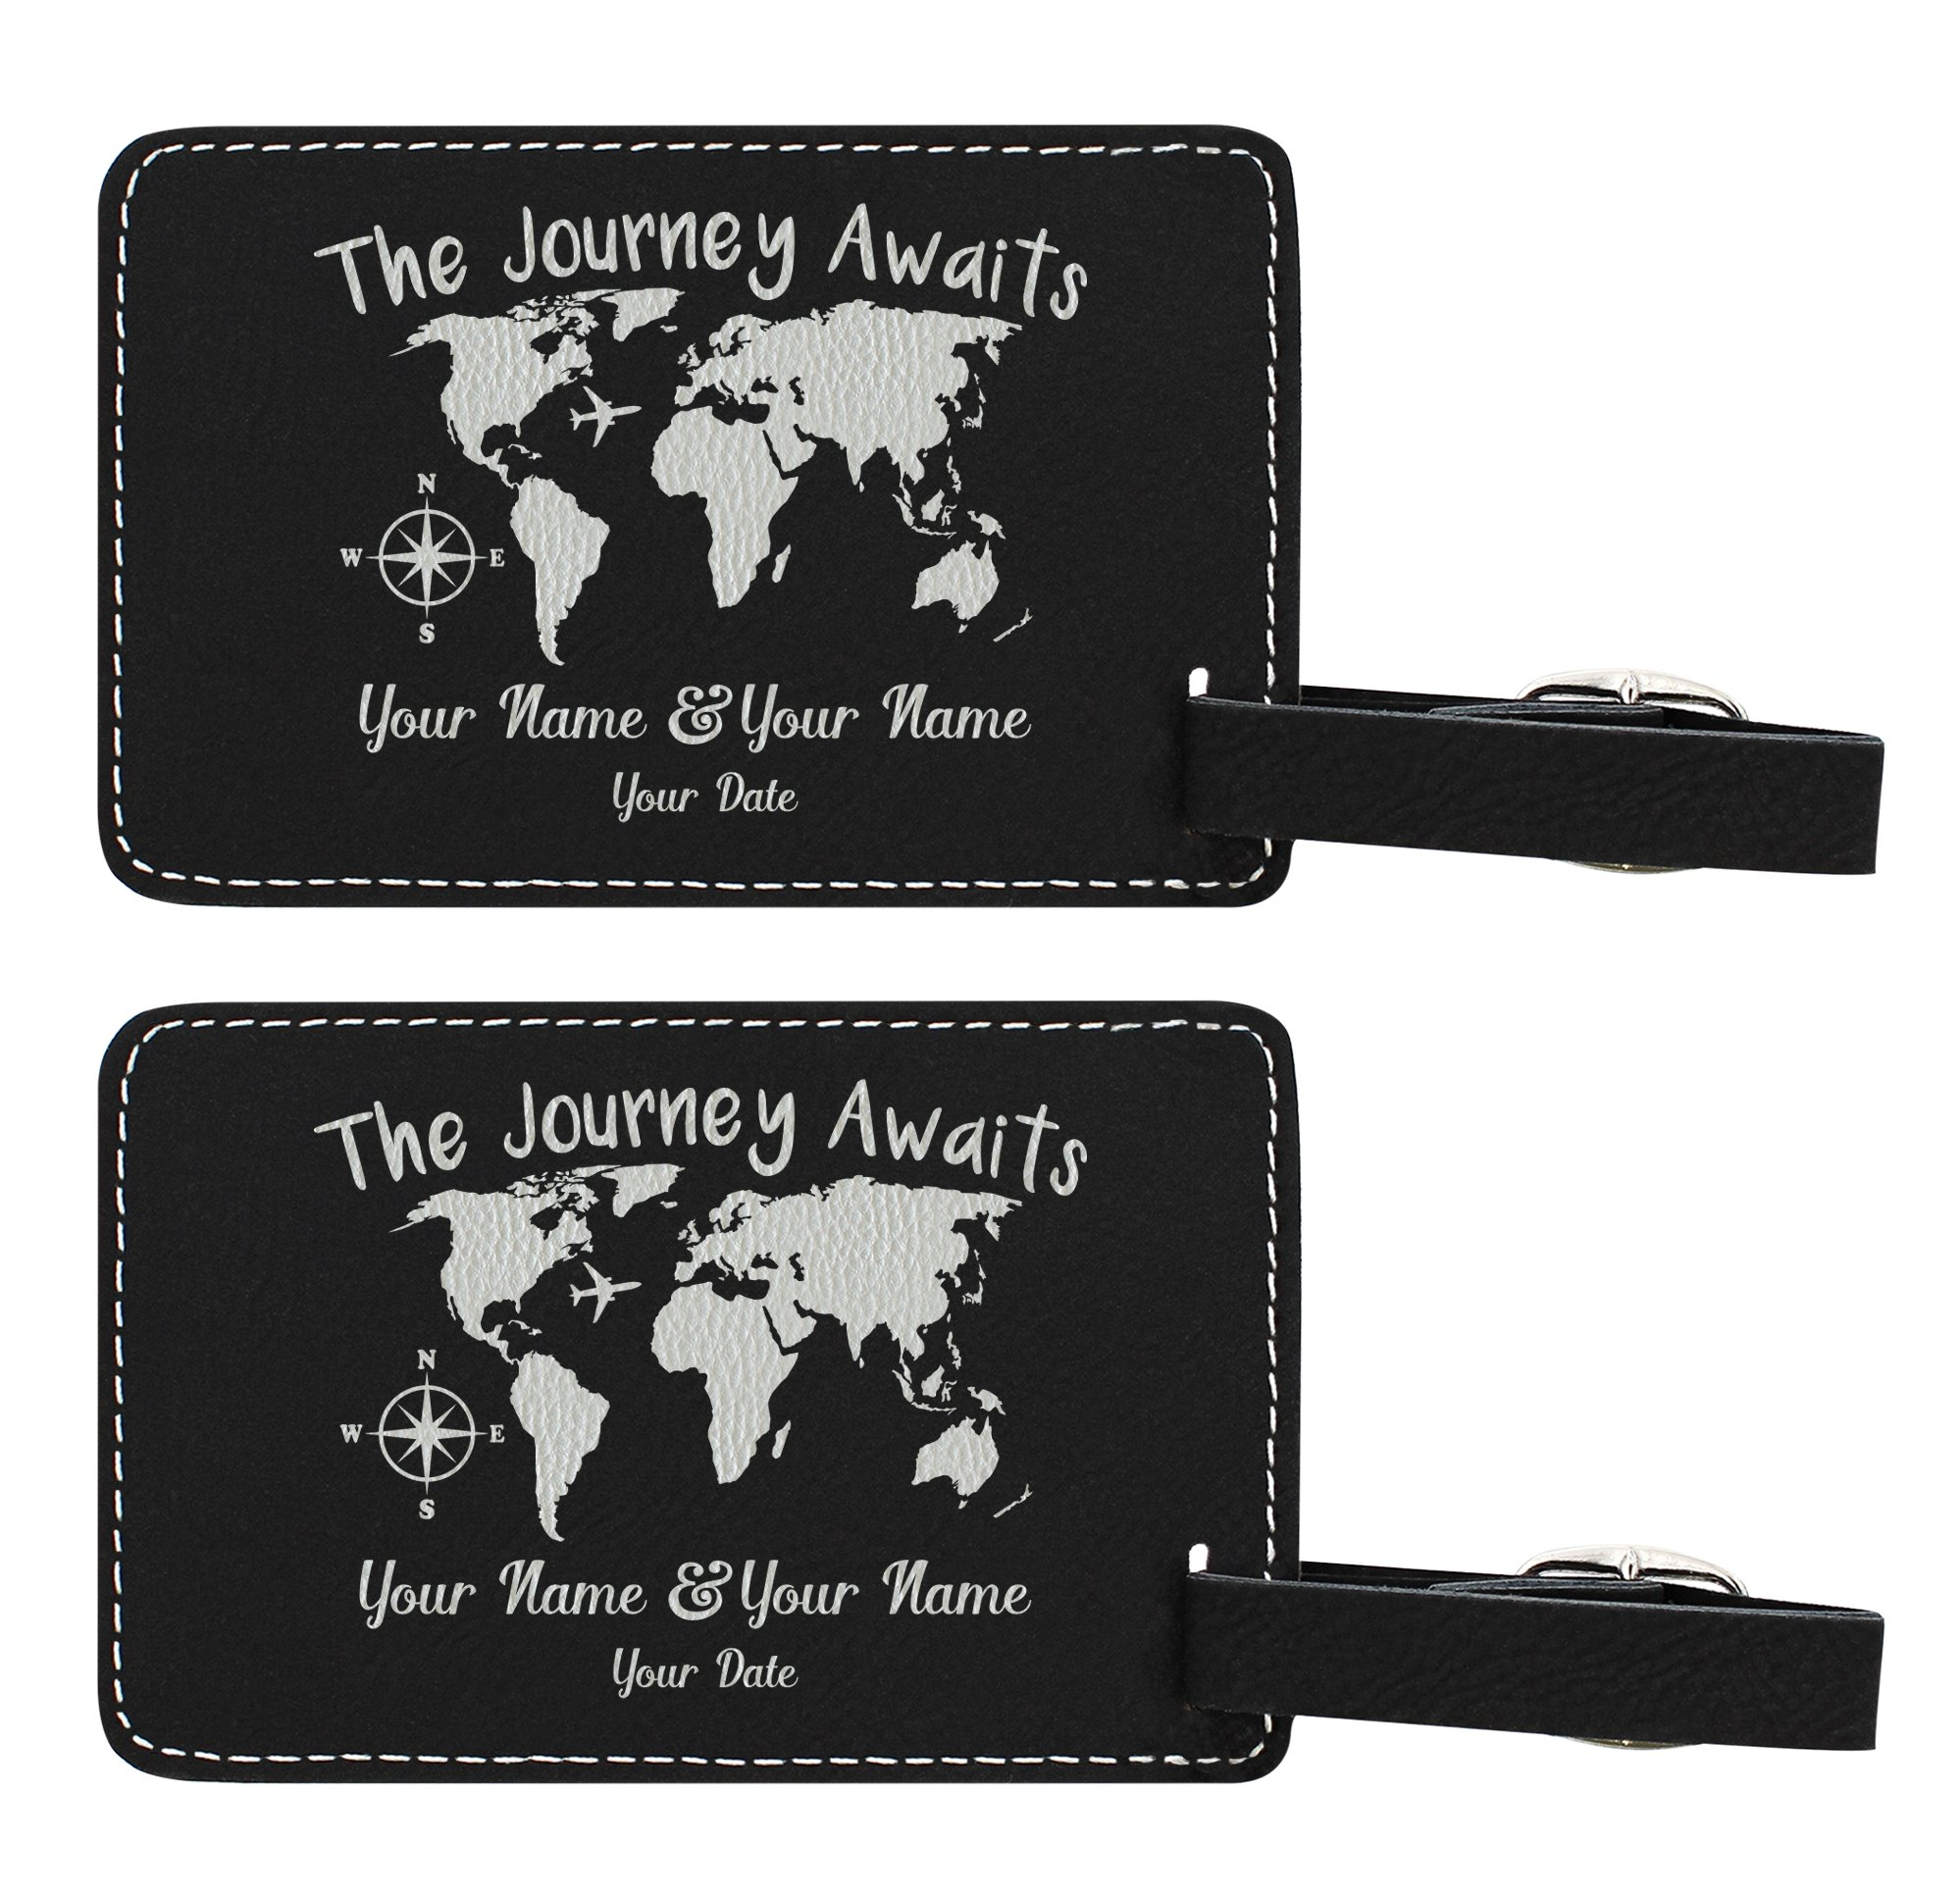 Personalized Wedding Anniversary Gifts Custom Names & Text Journey Awaits Personalized Wedding Gifts Personalized 2-pack Laser Engraved Leather Luggage Tags Black